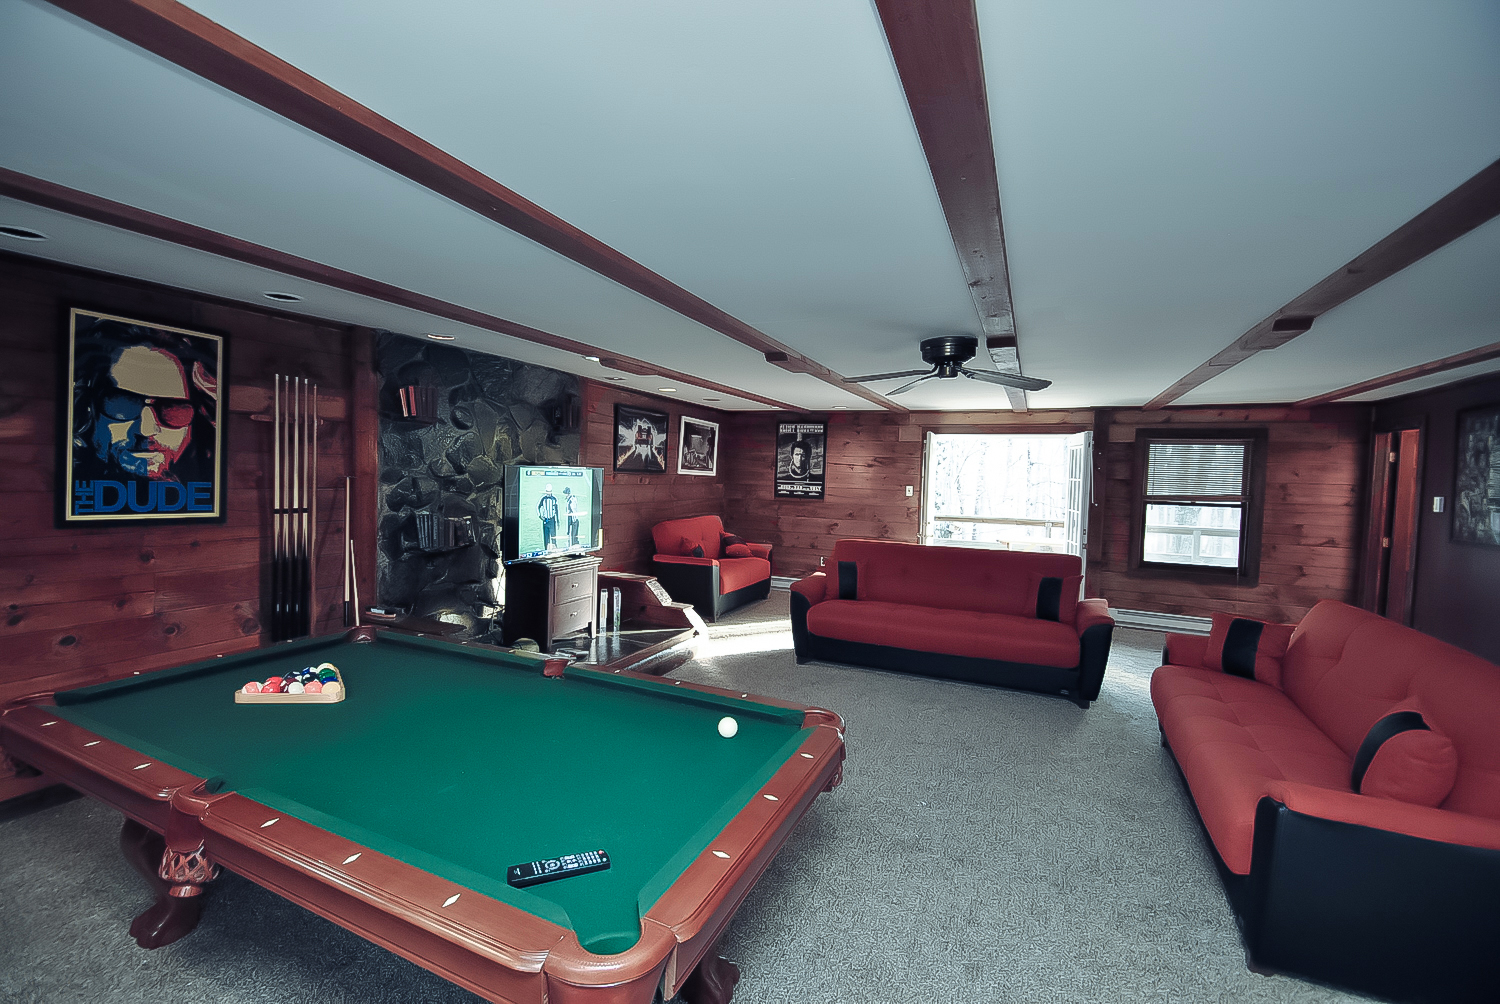 Sleeps 14-16: 6 Bedrooms (6 queen beds), 3 Baths, Game Room with Roku w/Sling/Netflix, Firepit in the Back, BBQ Grill, Poker Table and a Hot Tub right outside, also a creek is down the hill.